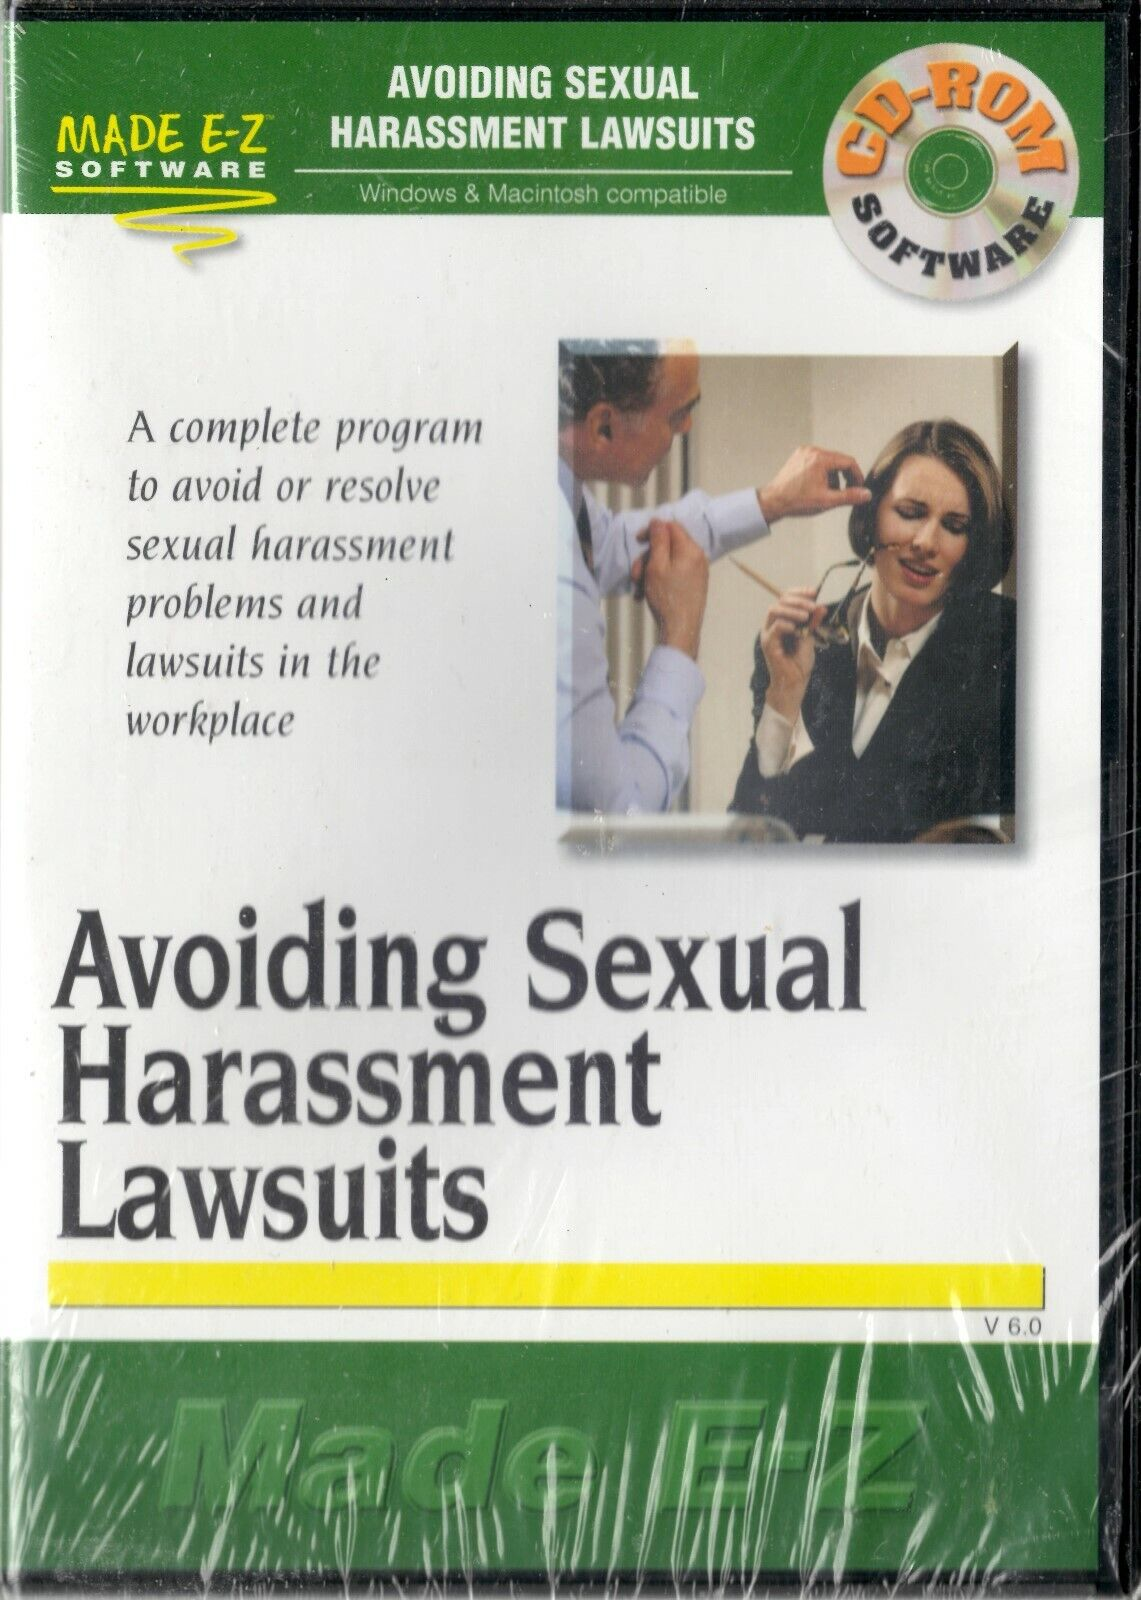 Made E-Z Software - Avoiding Sexual Harassment Lawsuits - CD-ROM 2001